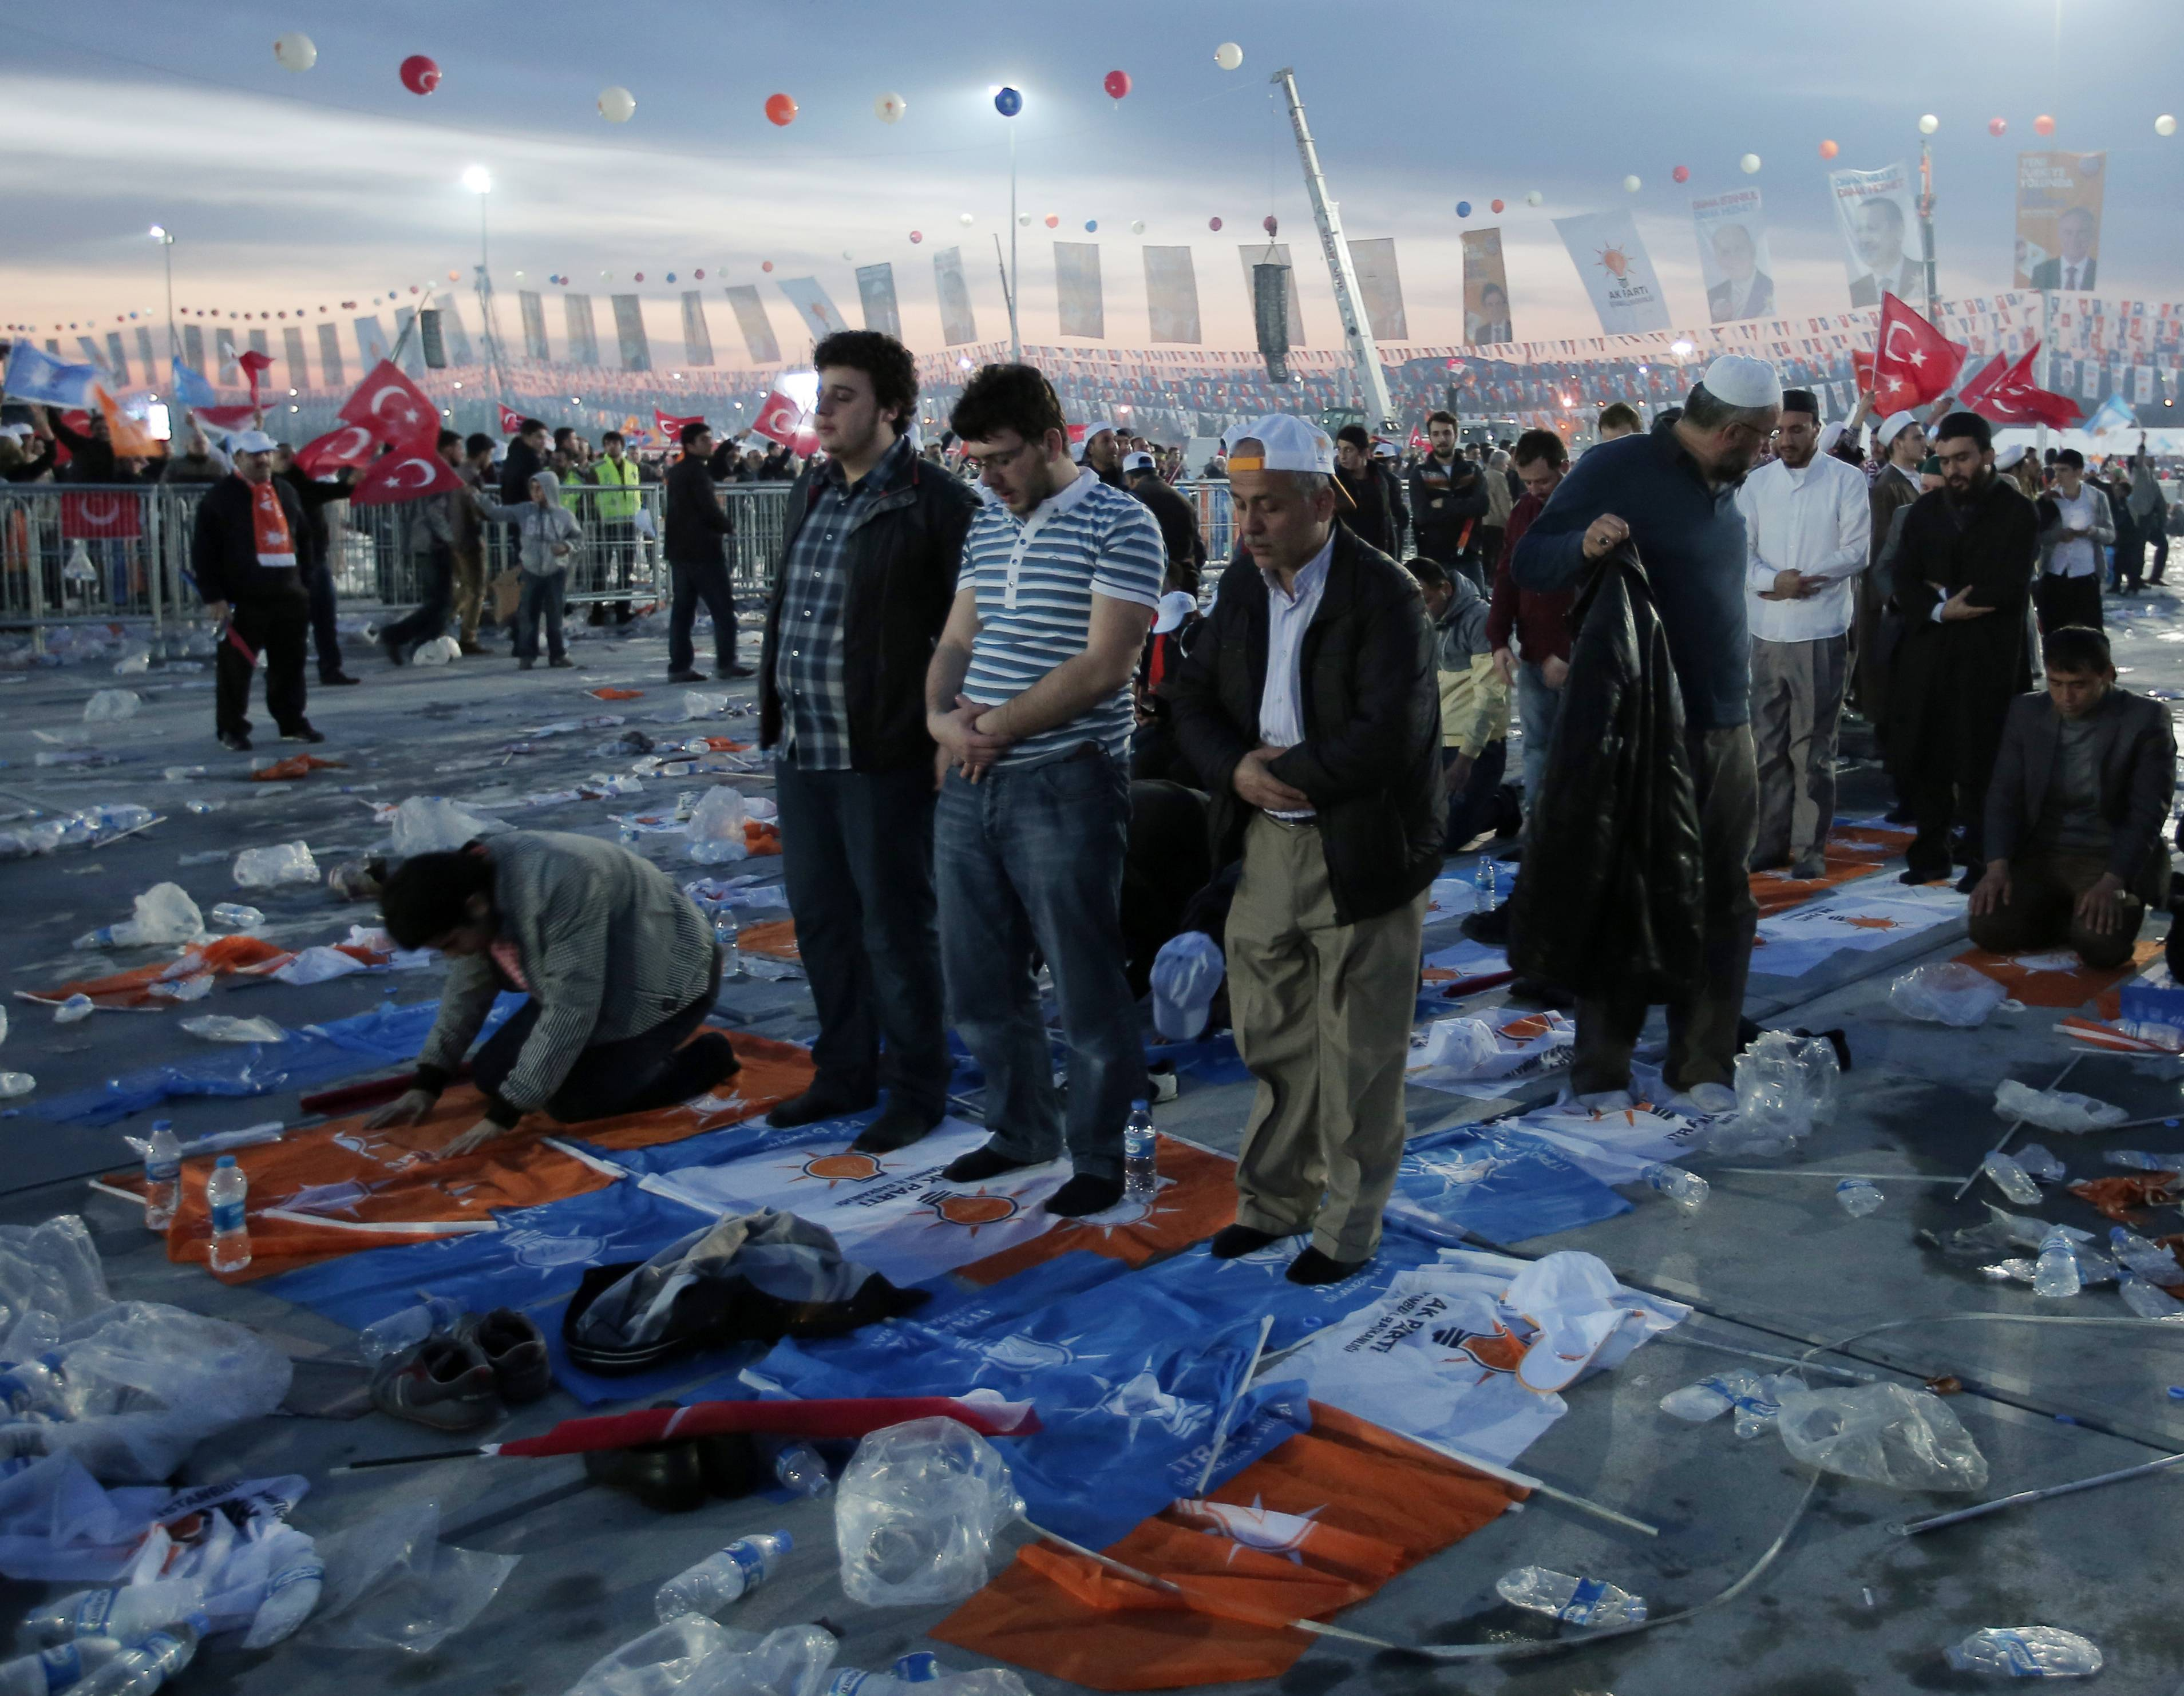 The supporters of Turkish Prime Minister Recep Tayyip Erdogan pray after a rally of his Justice and Development Party in Istanbul, Turkey, Sunday. Turkish fighter jets shot down a Syrian warplane after it violated Turkey's airspace Sunday, Erdogan said, in a move likely to ramp up tensions between the two countries already deeply at odds over Syria's civil war.